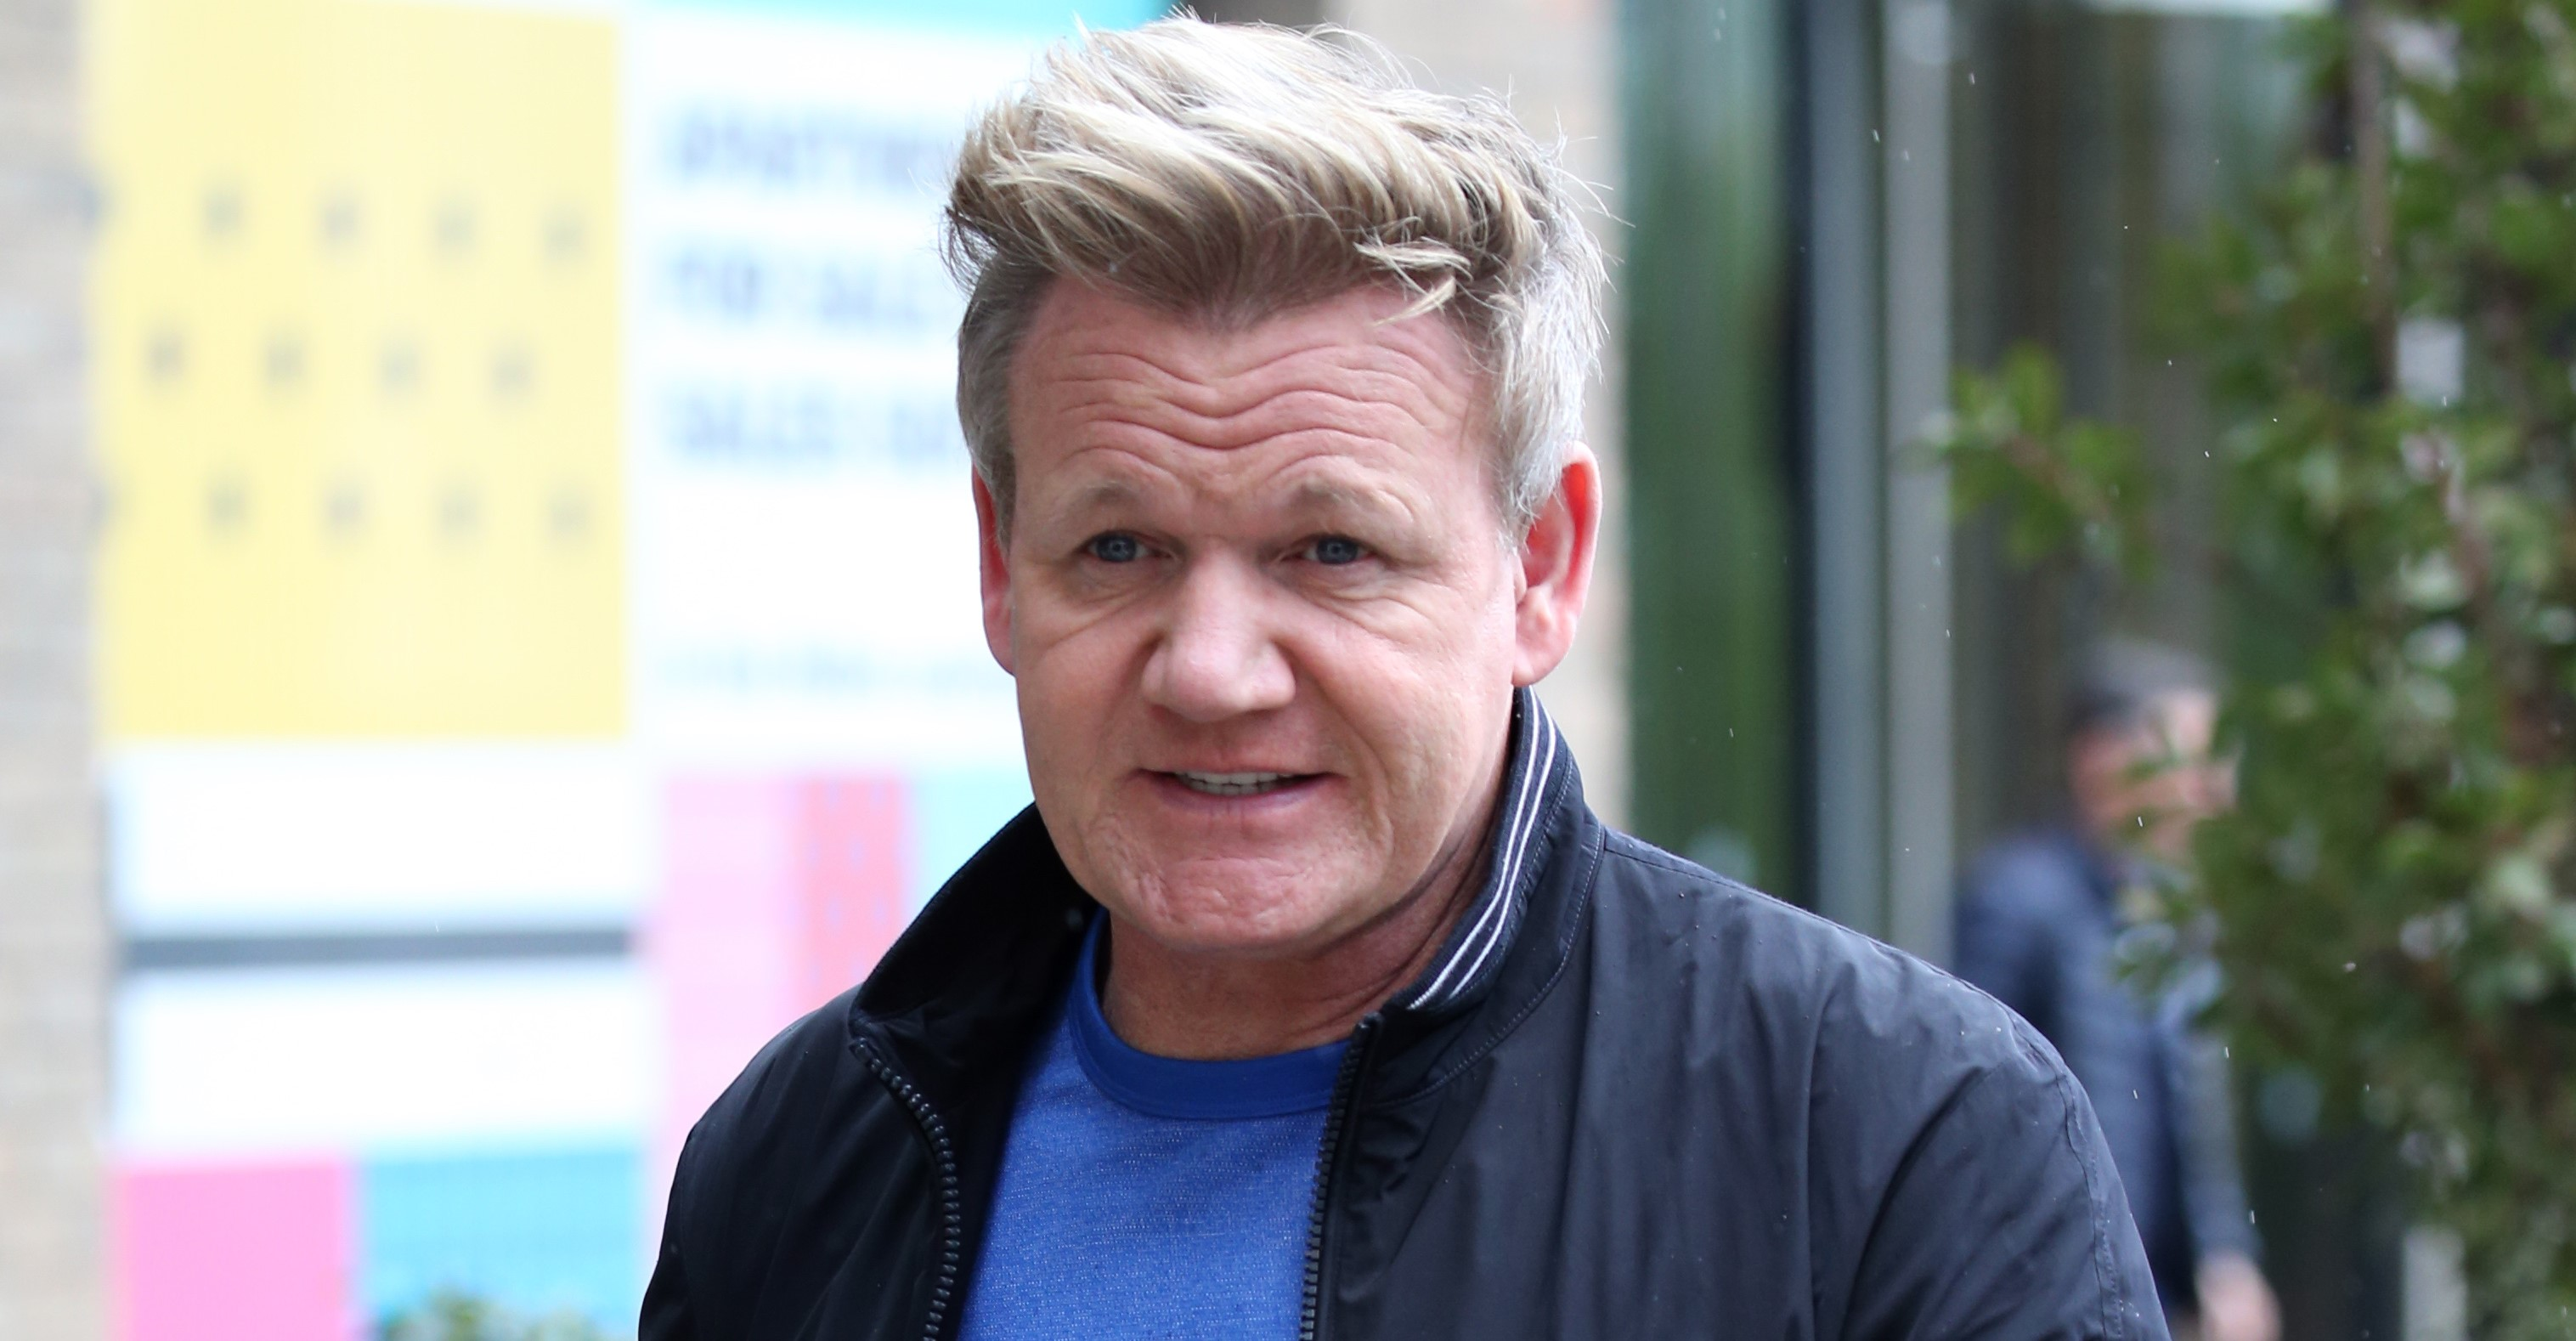 'Proud' Gordon Ramsay celebrates daughter graduating with sweet family photo